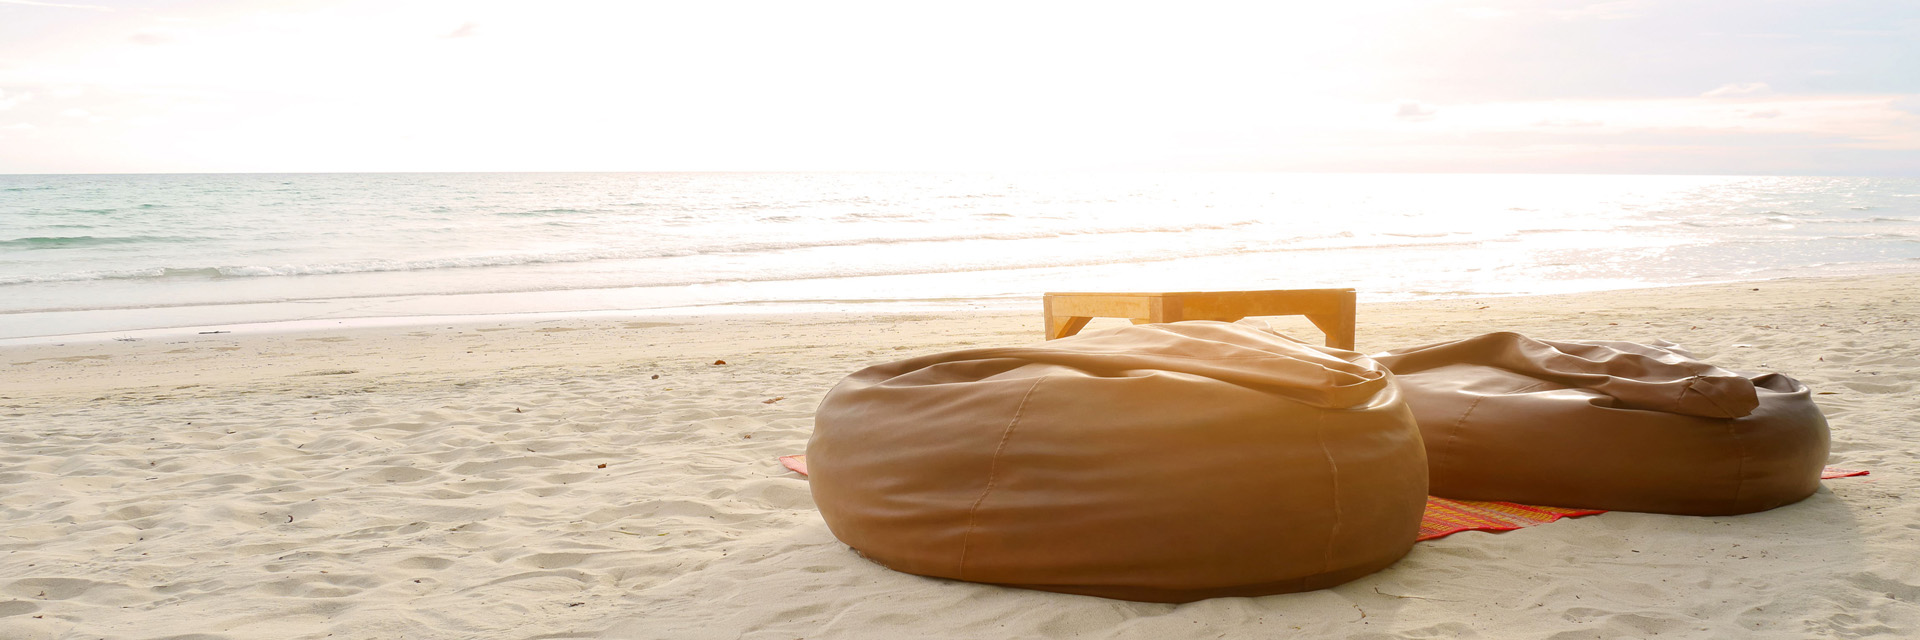 Bean bags and table set on the beach at sunset